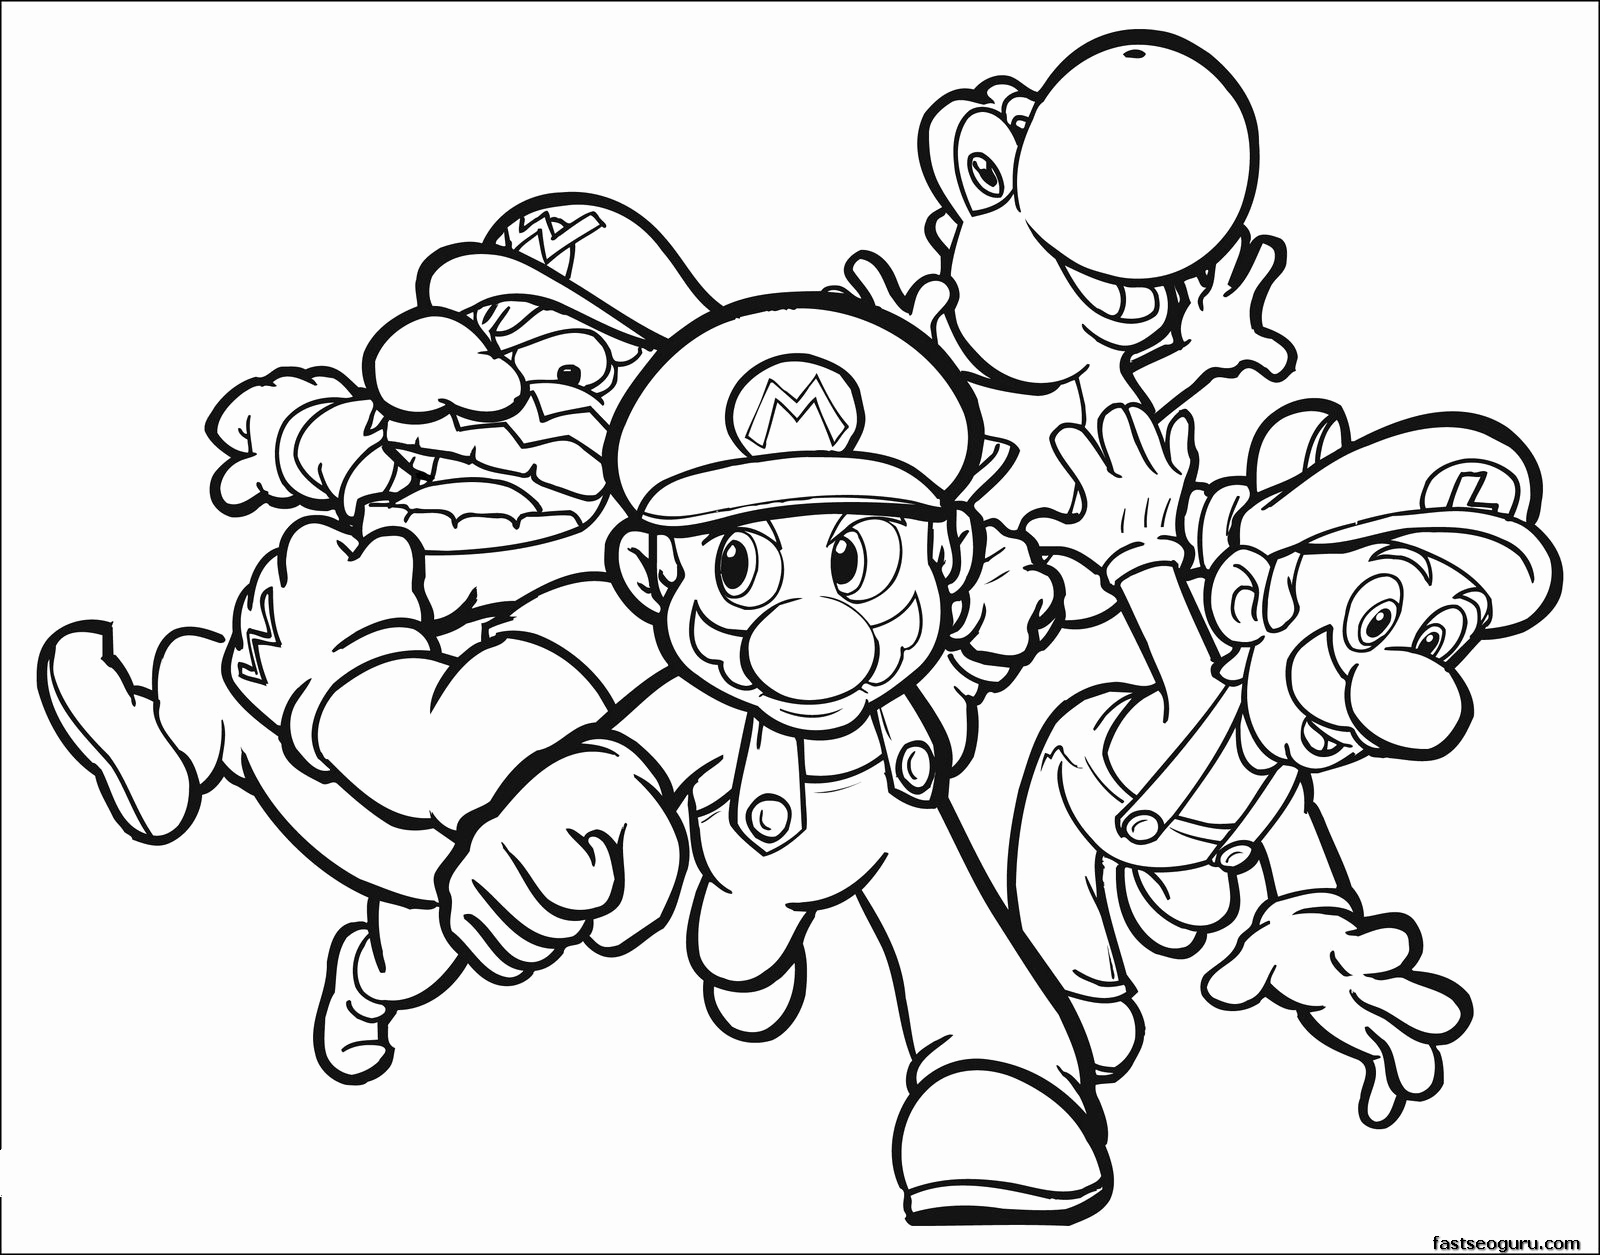 Ausmalbilder Super Mario Genial Coloring Printing Pages New Coloring Color Printable Pages 20